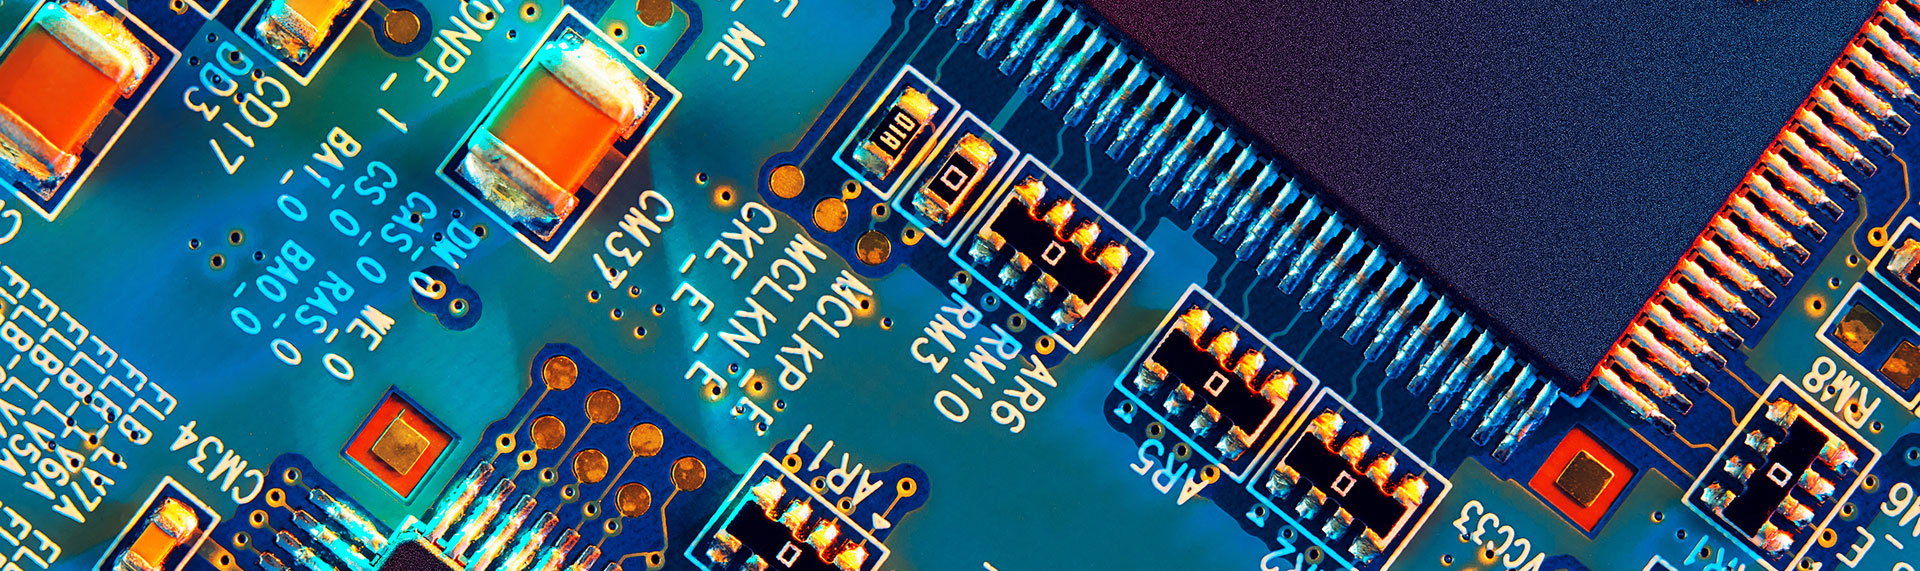 Semiconductors and Board Level Electronic Components